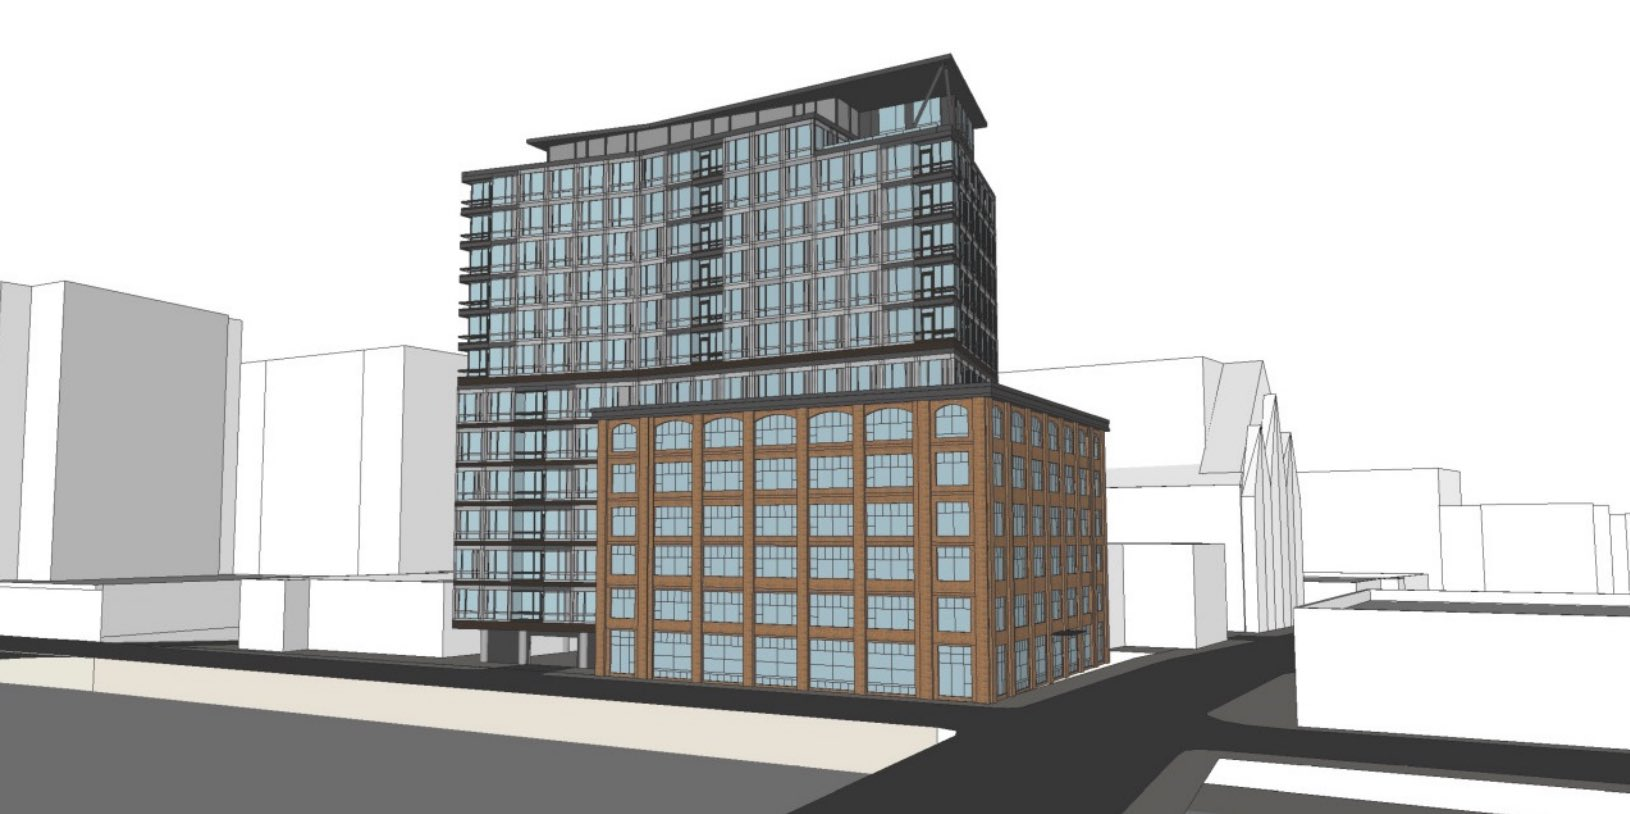 112 shawmut avenue south end new york streets proposed residential apartment retail development the davis companies